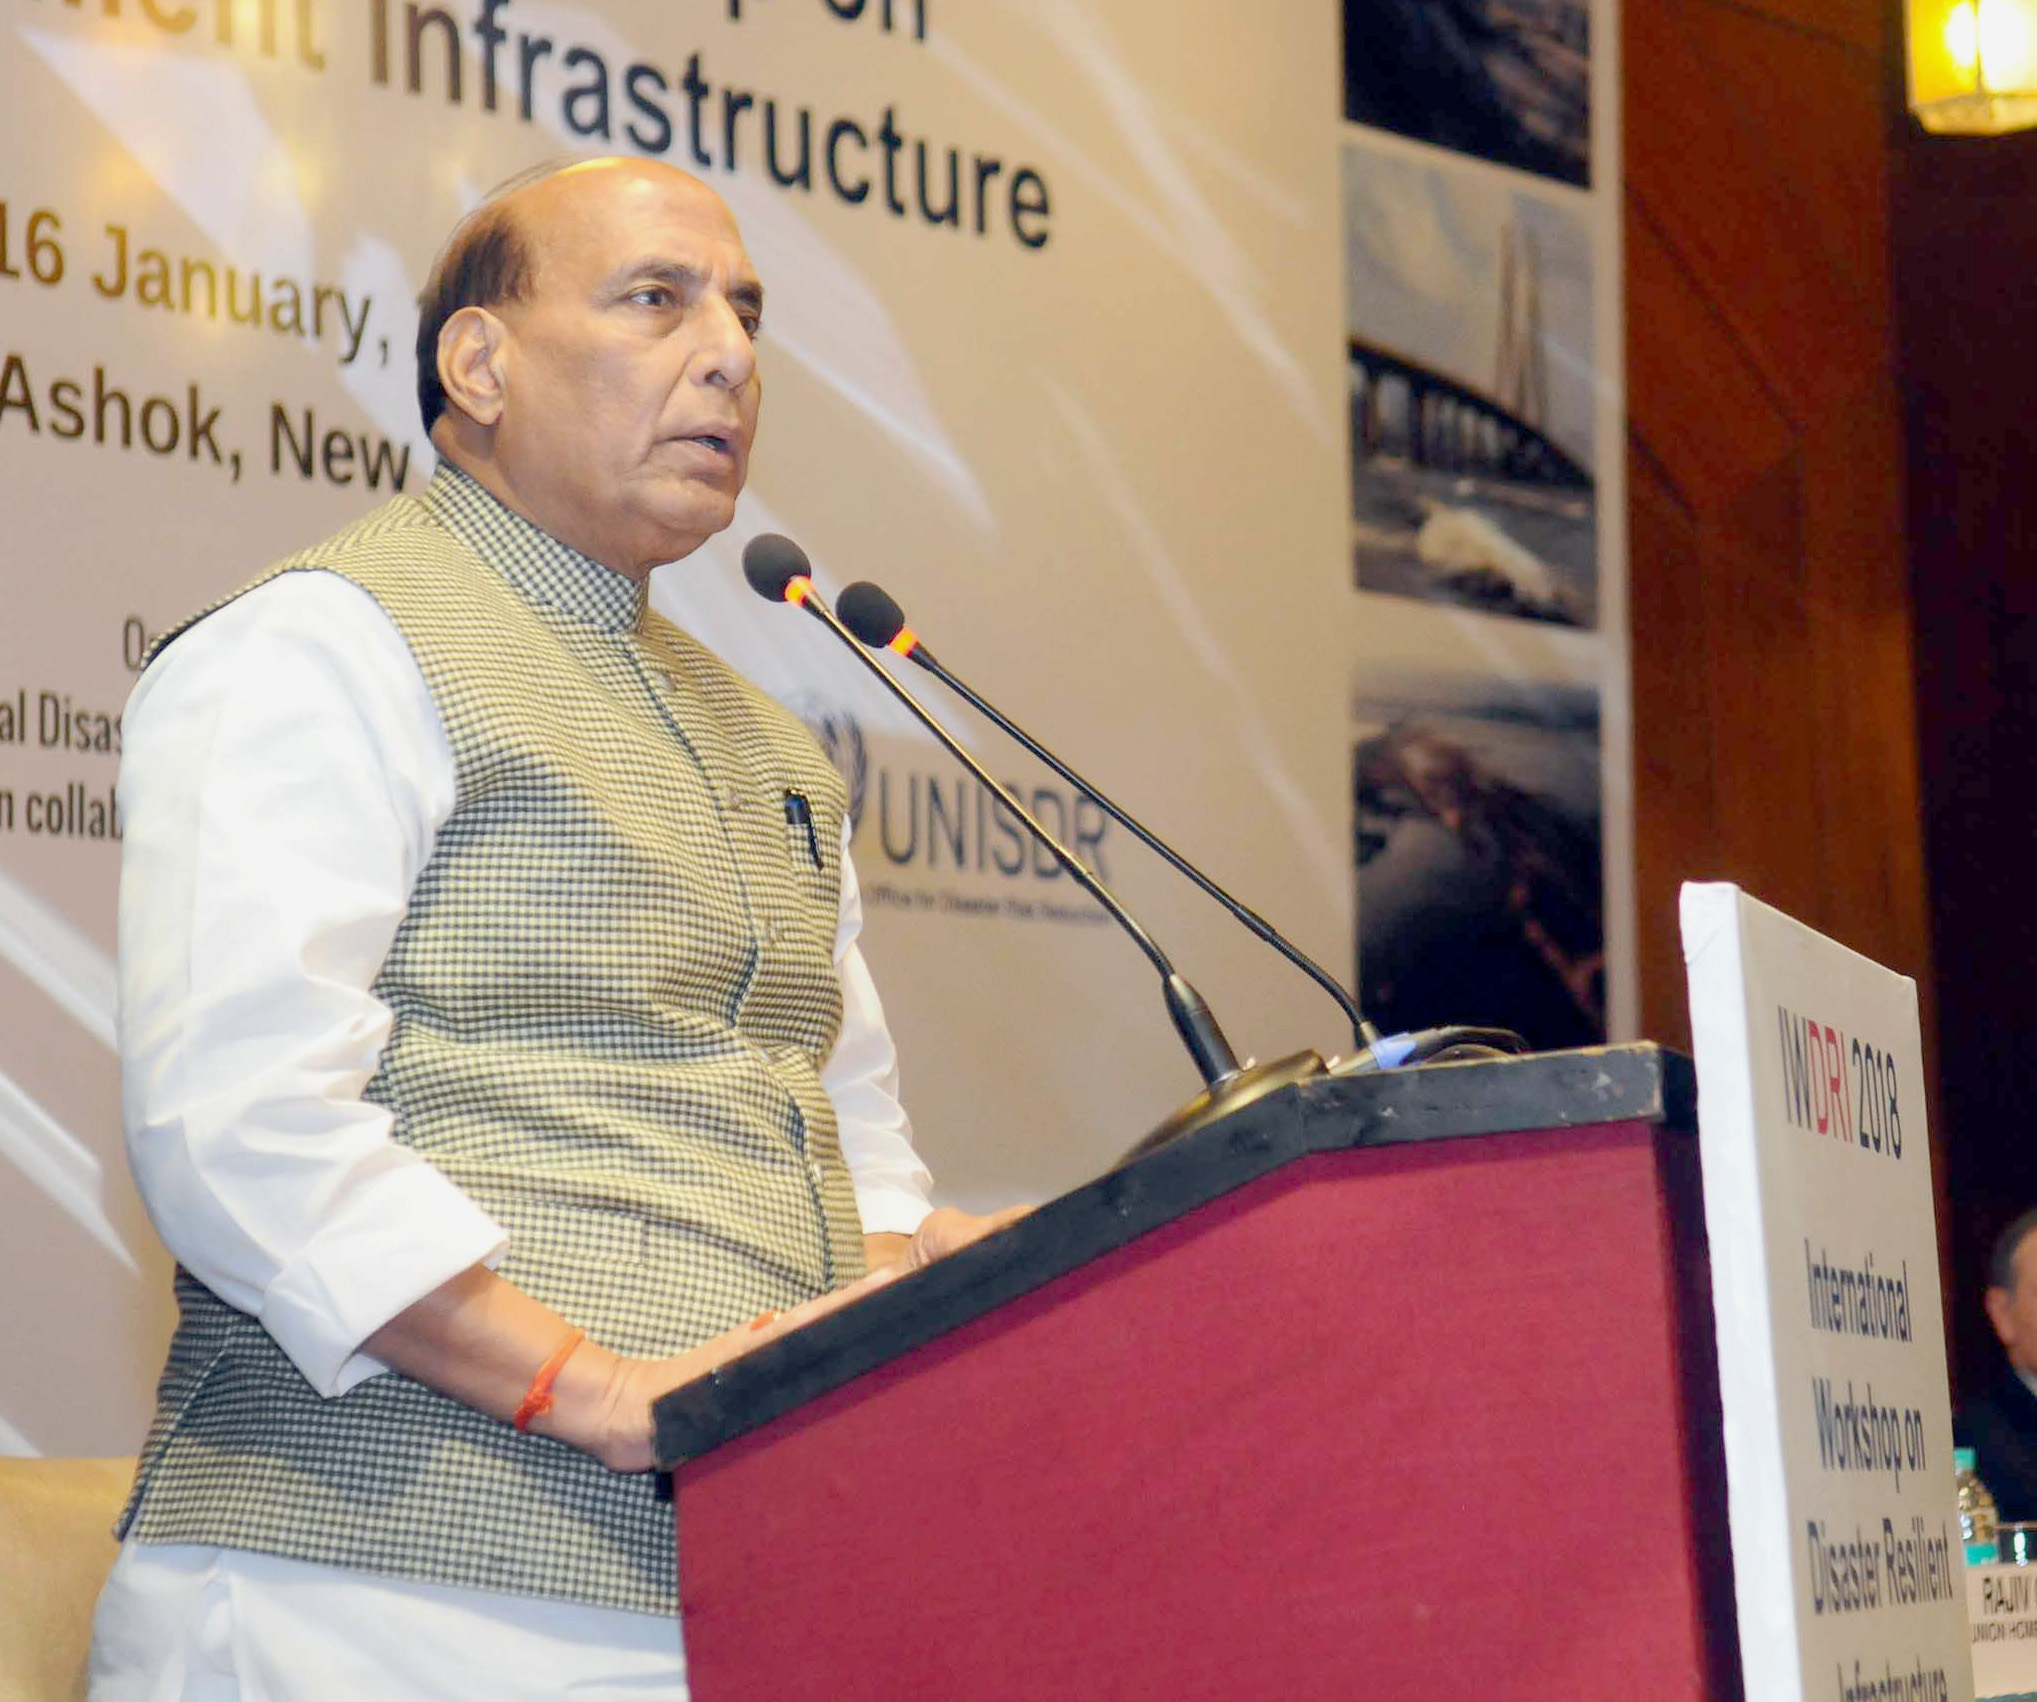 The Union Home Minister, Shri Rajnath Singh addressing the inaugural session of the International Workshop on Disaster Resilient Infrastructure (IWDRI), in New Delhi on January 15, 2018.